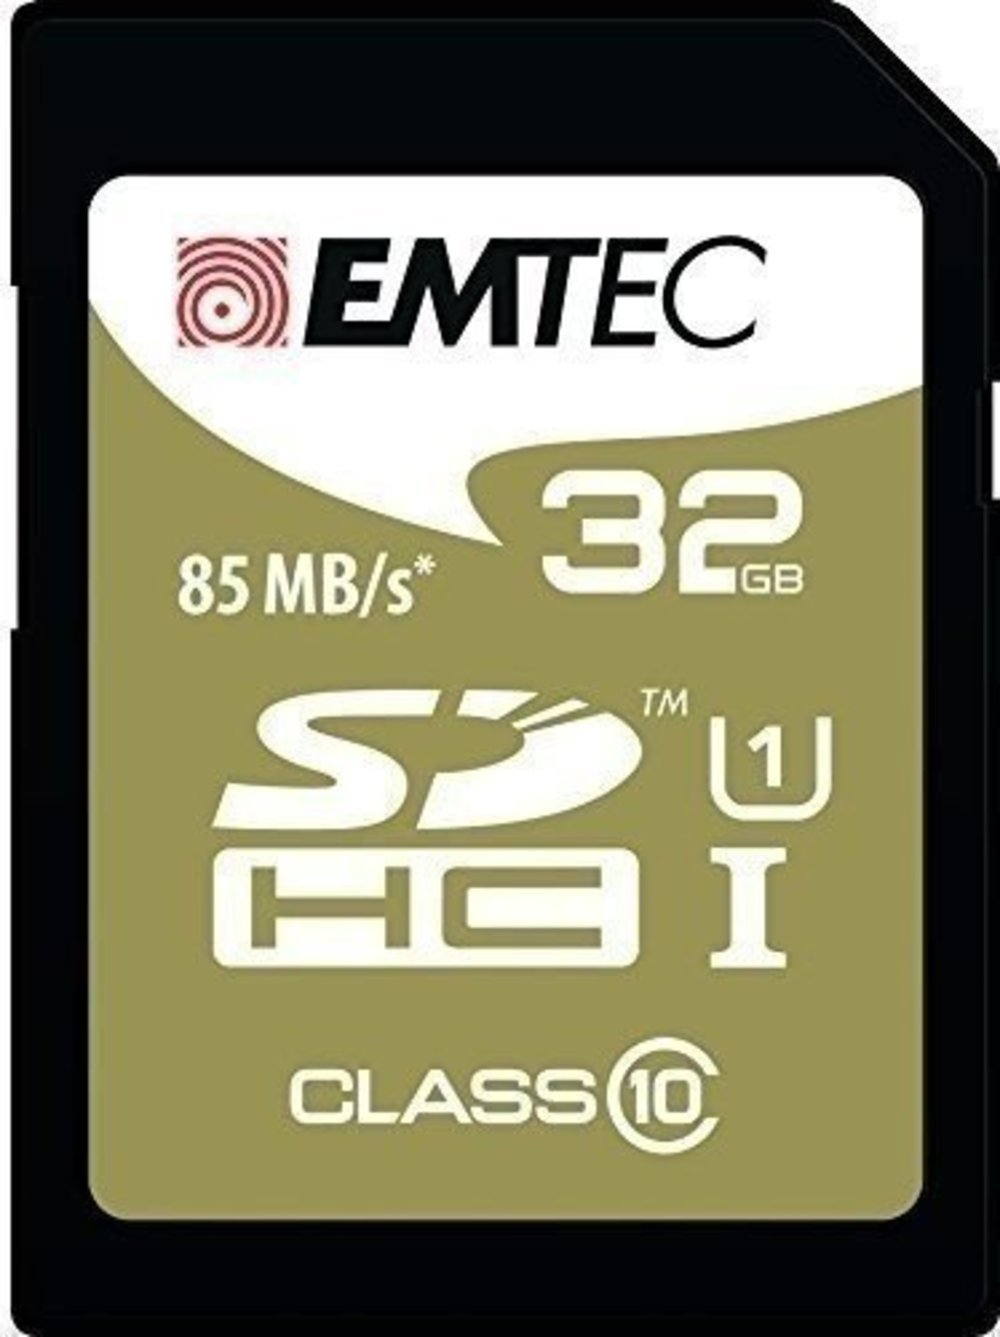 SD Card 32GB Emtec SDHC (CLASS10) Gold + Kartenblister